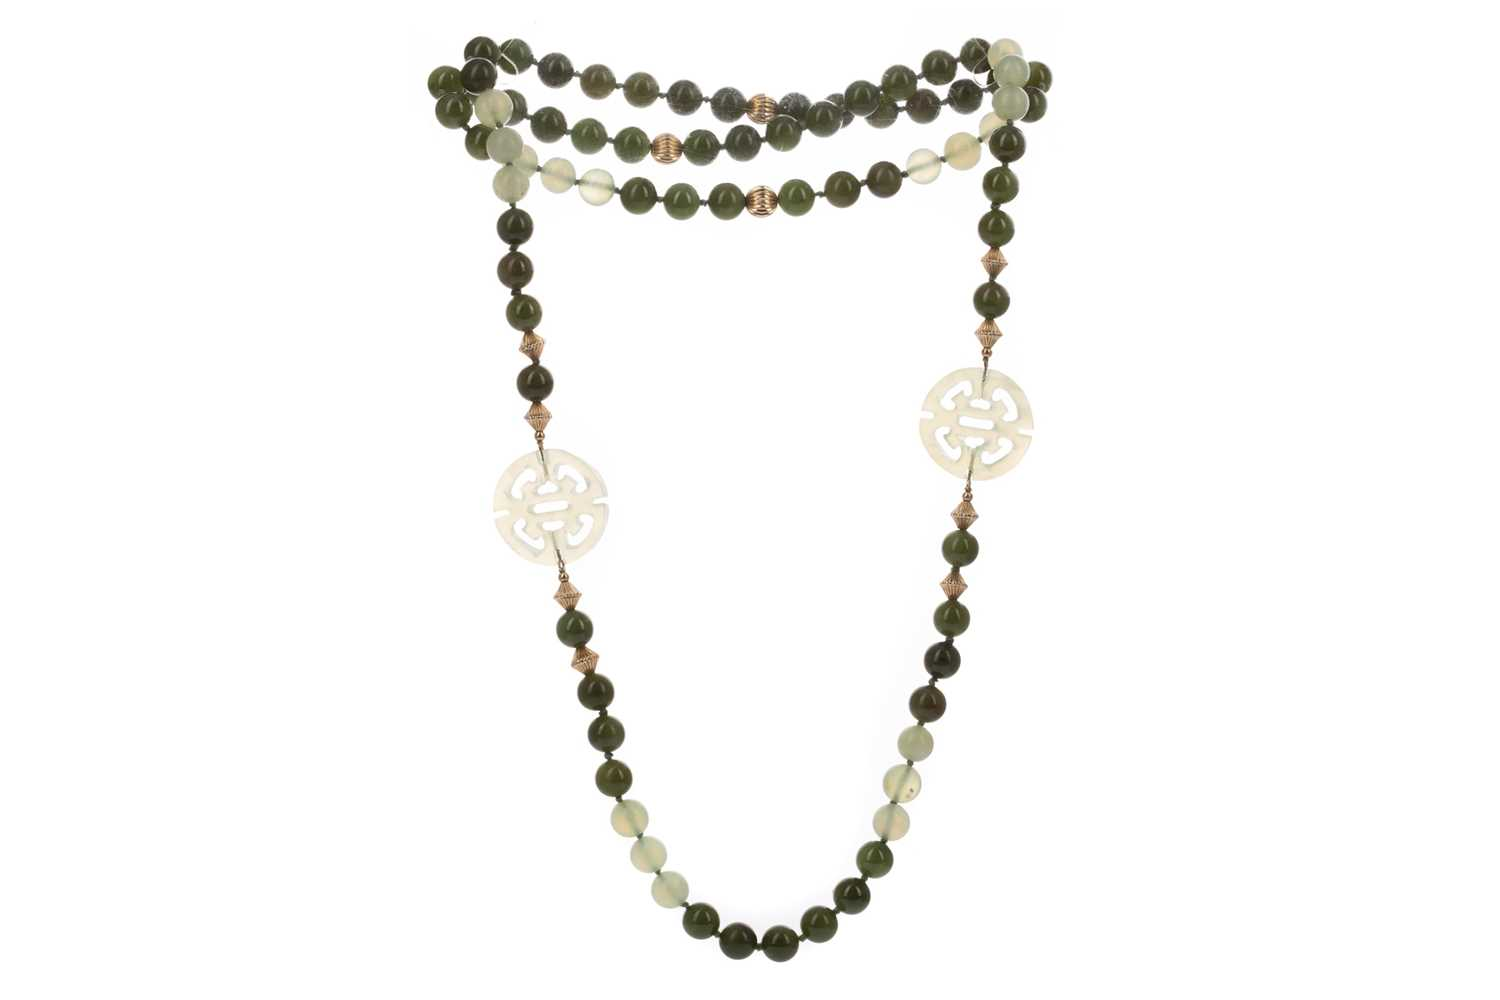 Lot 357 - GREEN HARDSTONE NECKLACE